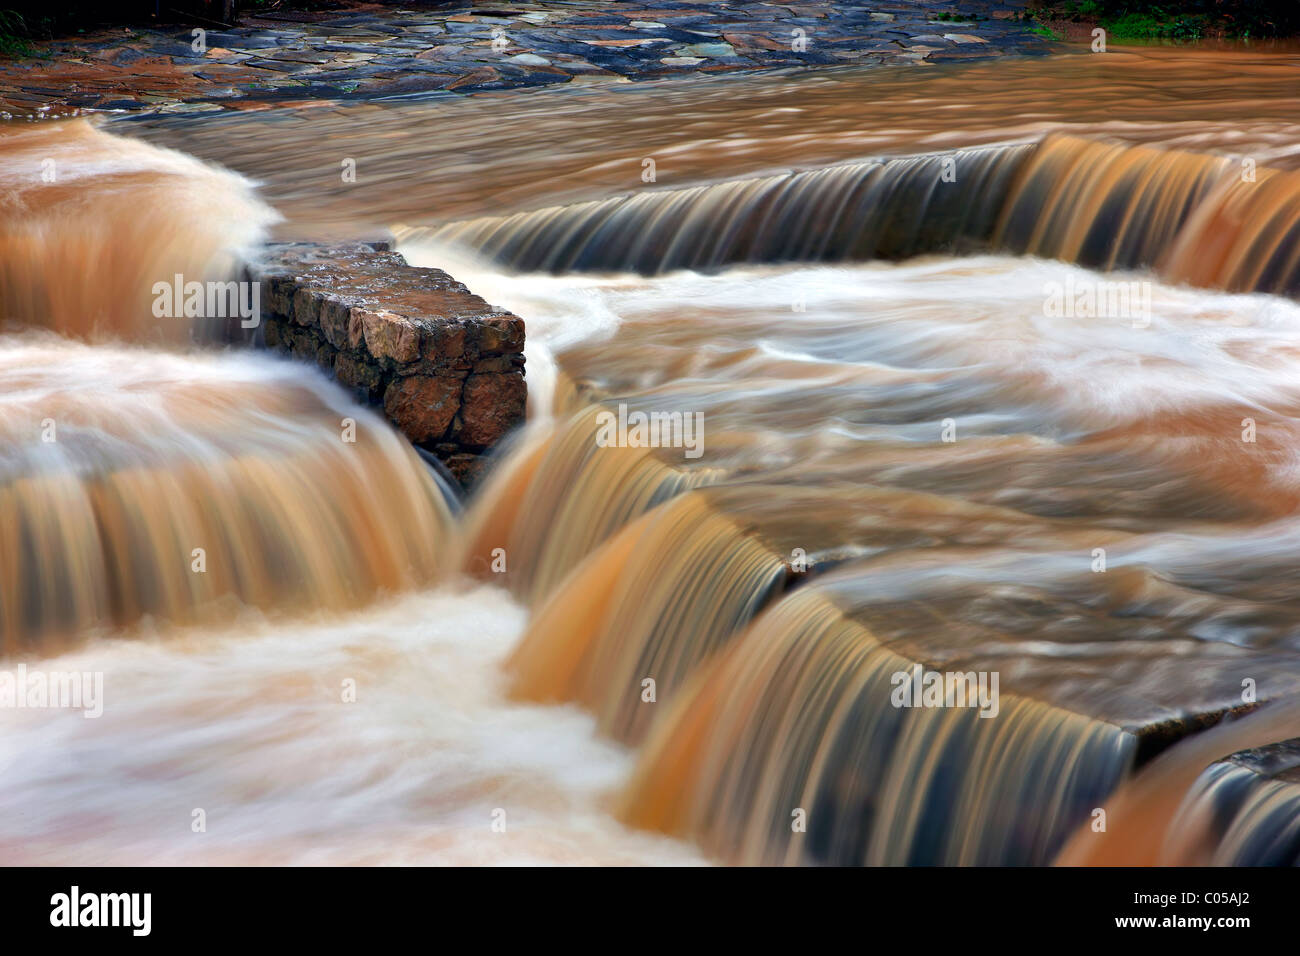 Erkyna river, in Krya Springs, Livadia, Greece, flooded. - Stock Image